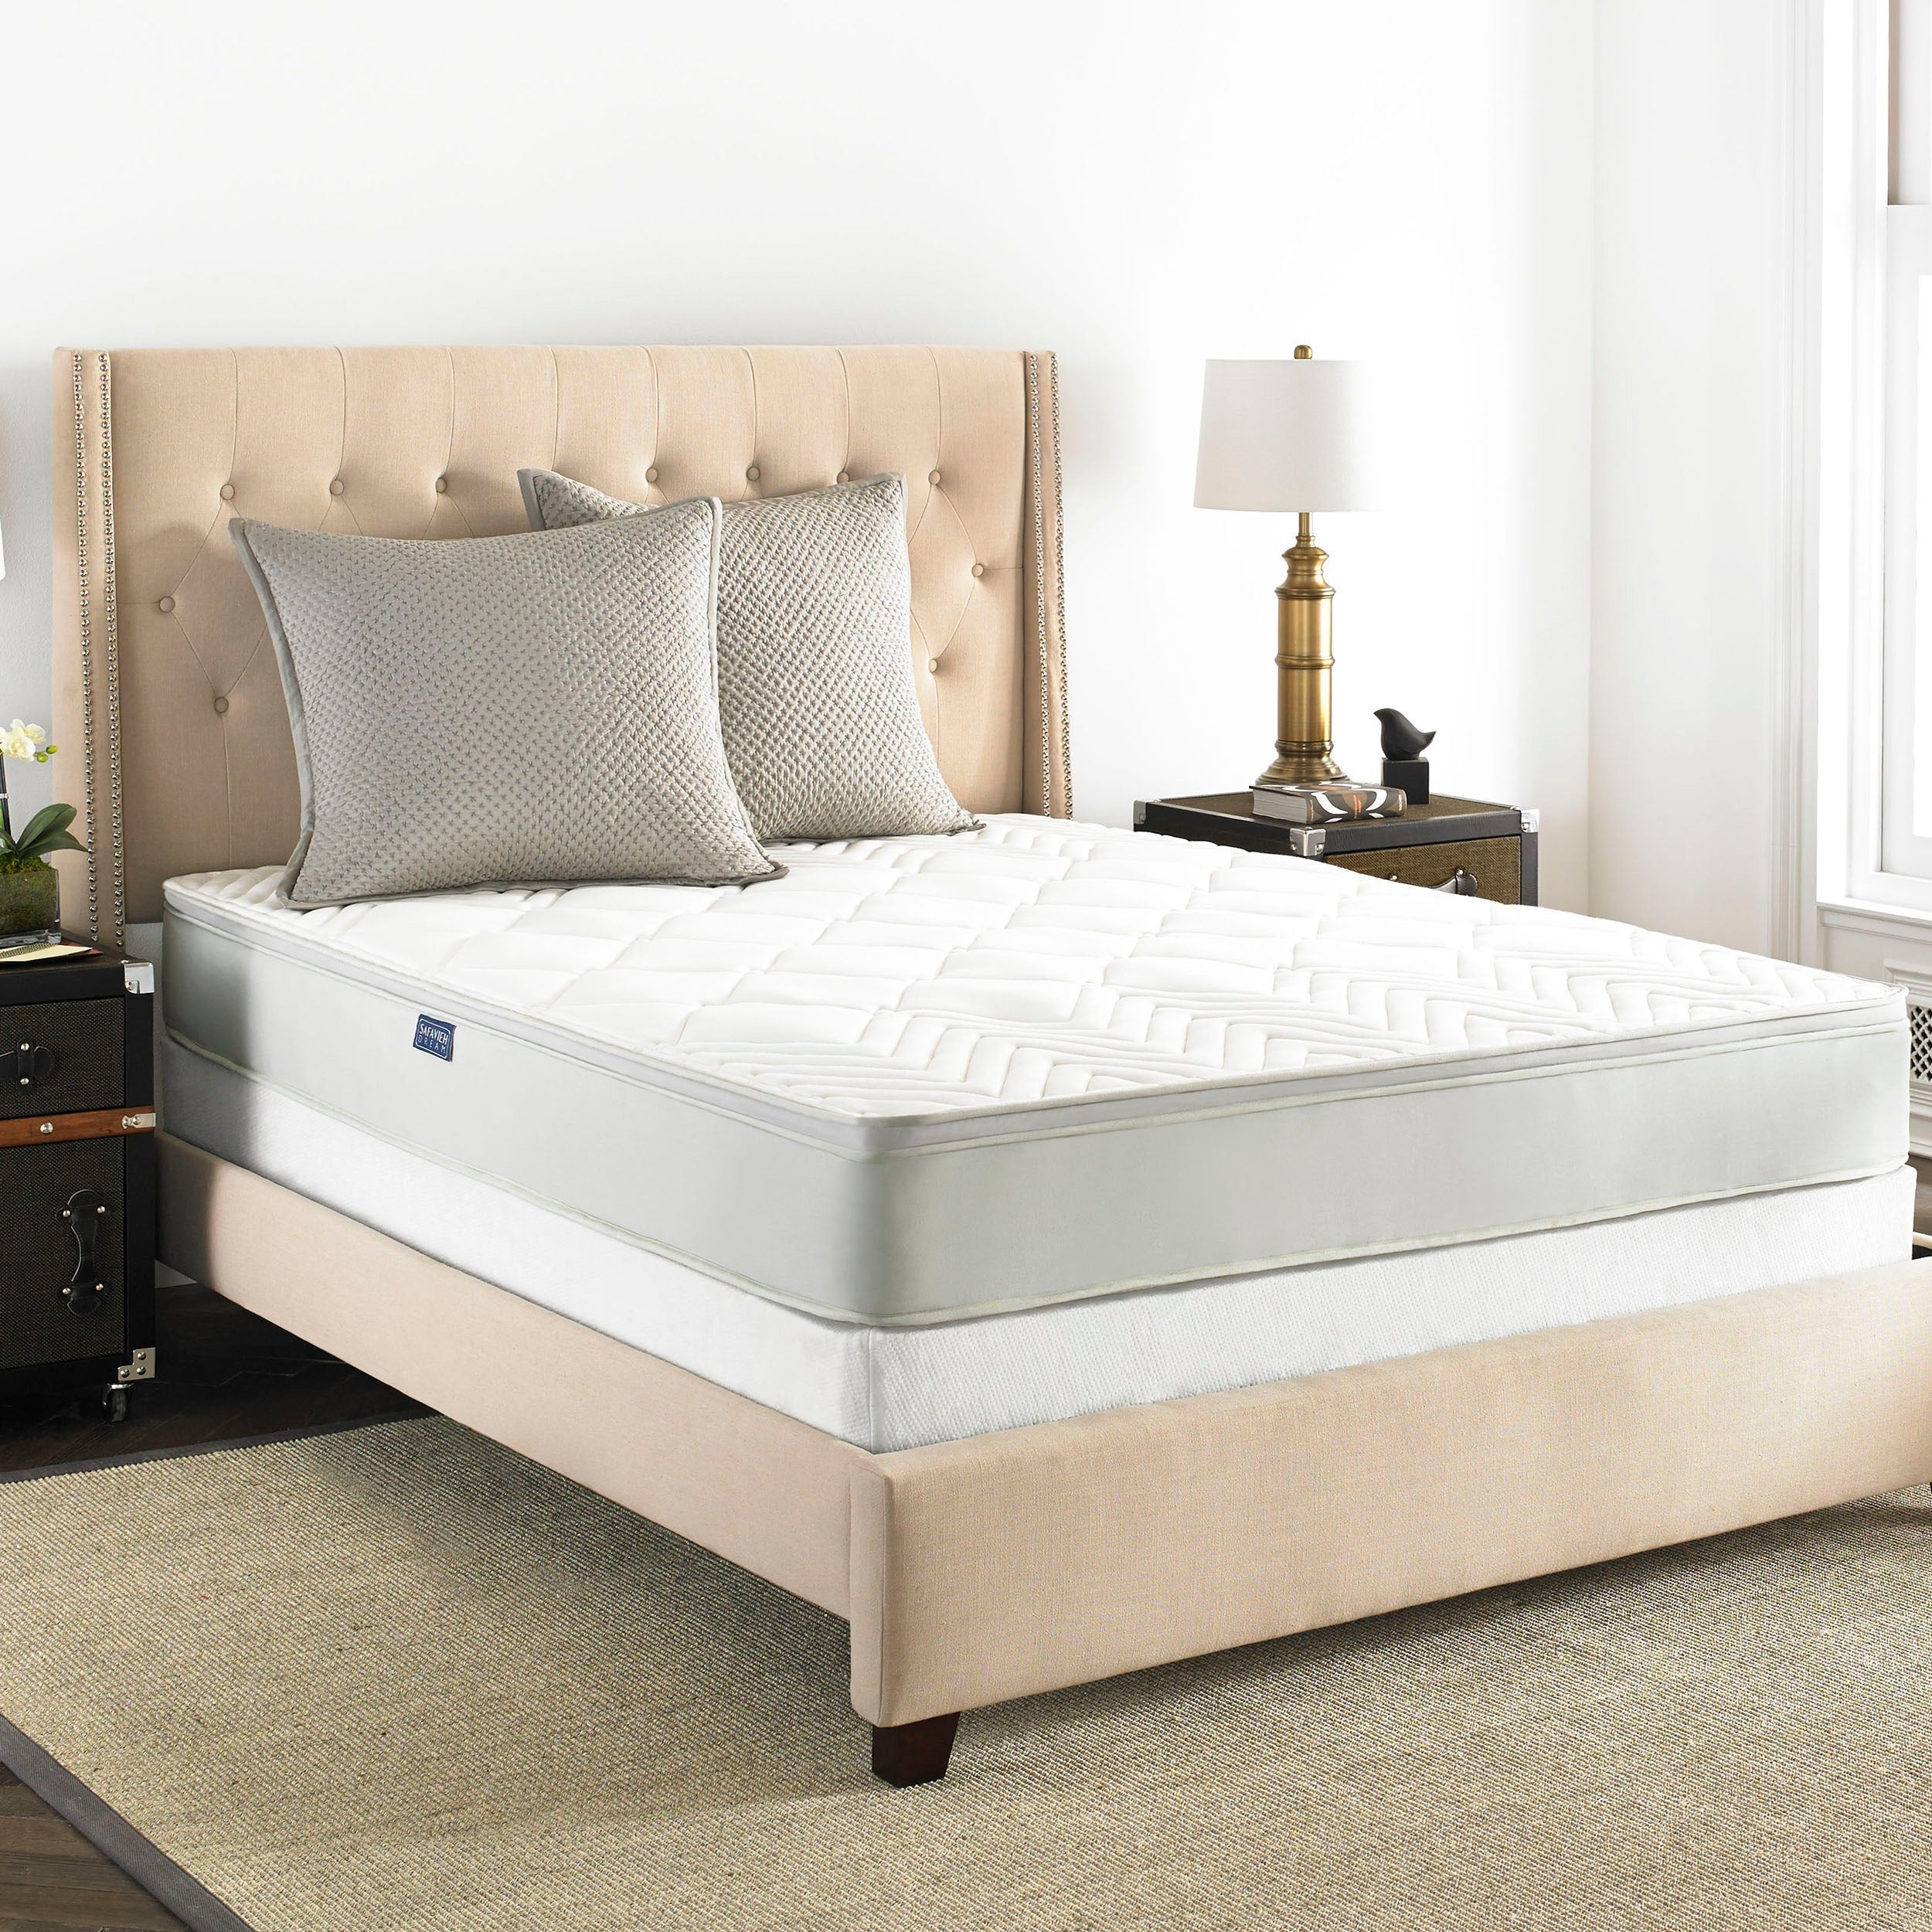 pillow furniture spring mattress size jsp store rcwilley top view willey rc inc full box and mattresses sleep richmond